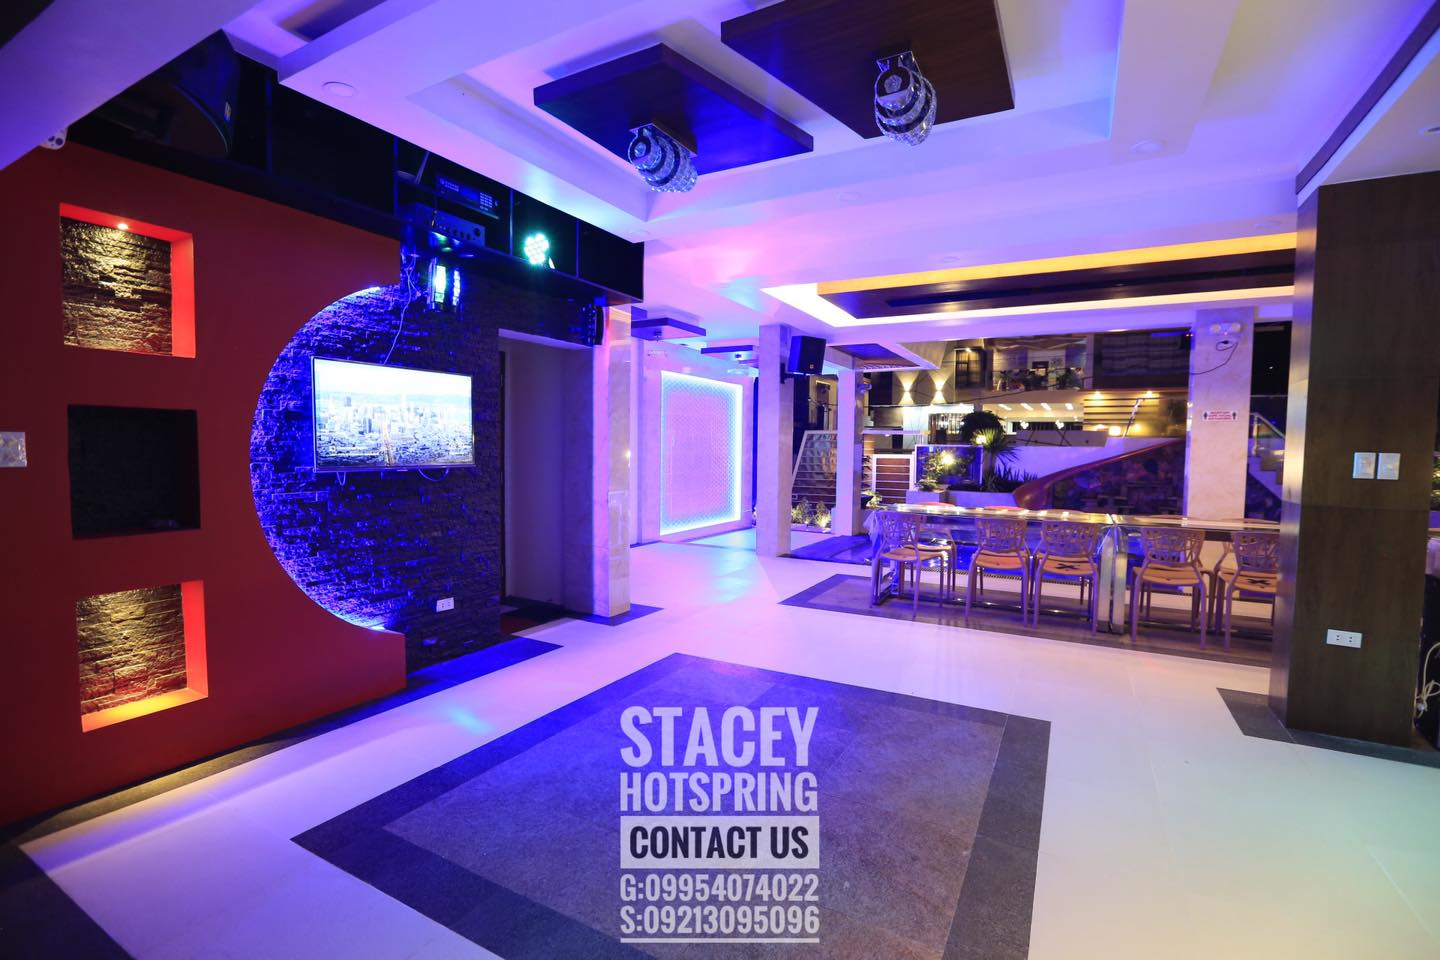 Stacey 35